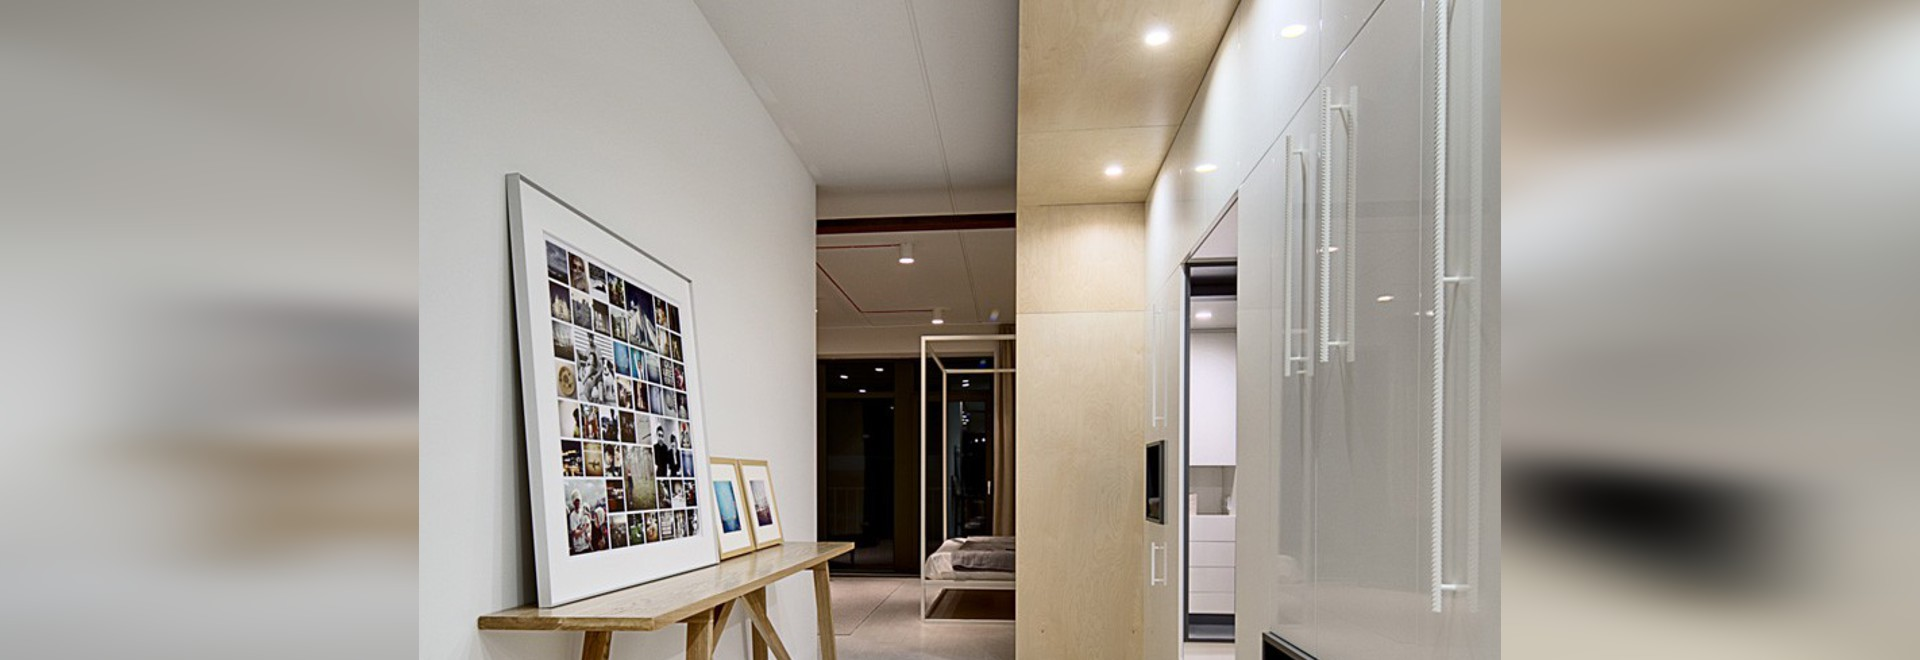 2B.group Design An Apartment Interior For A Family Of Two And A ...